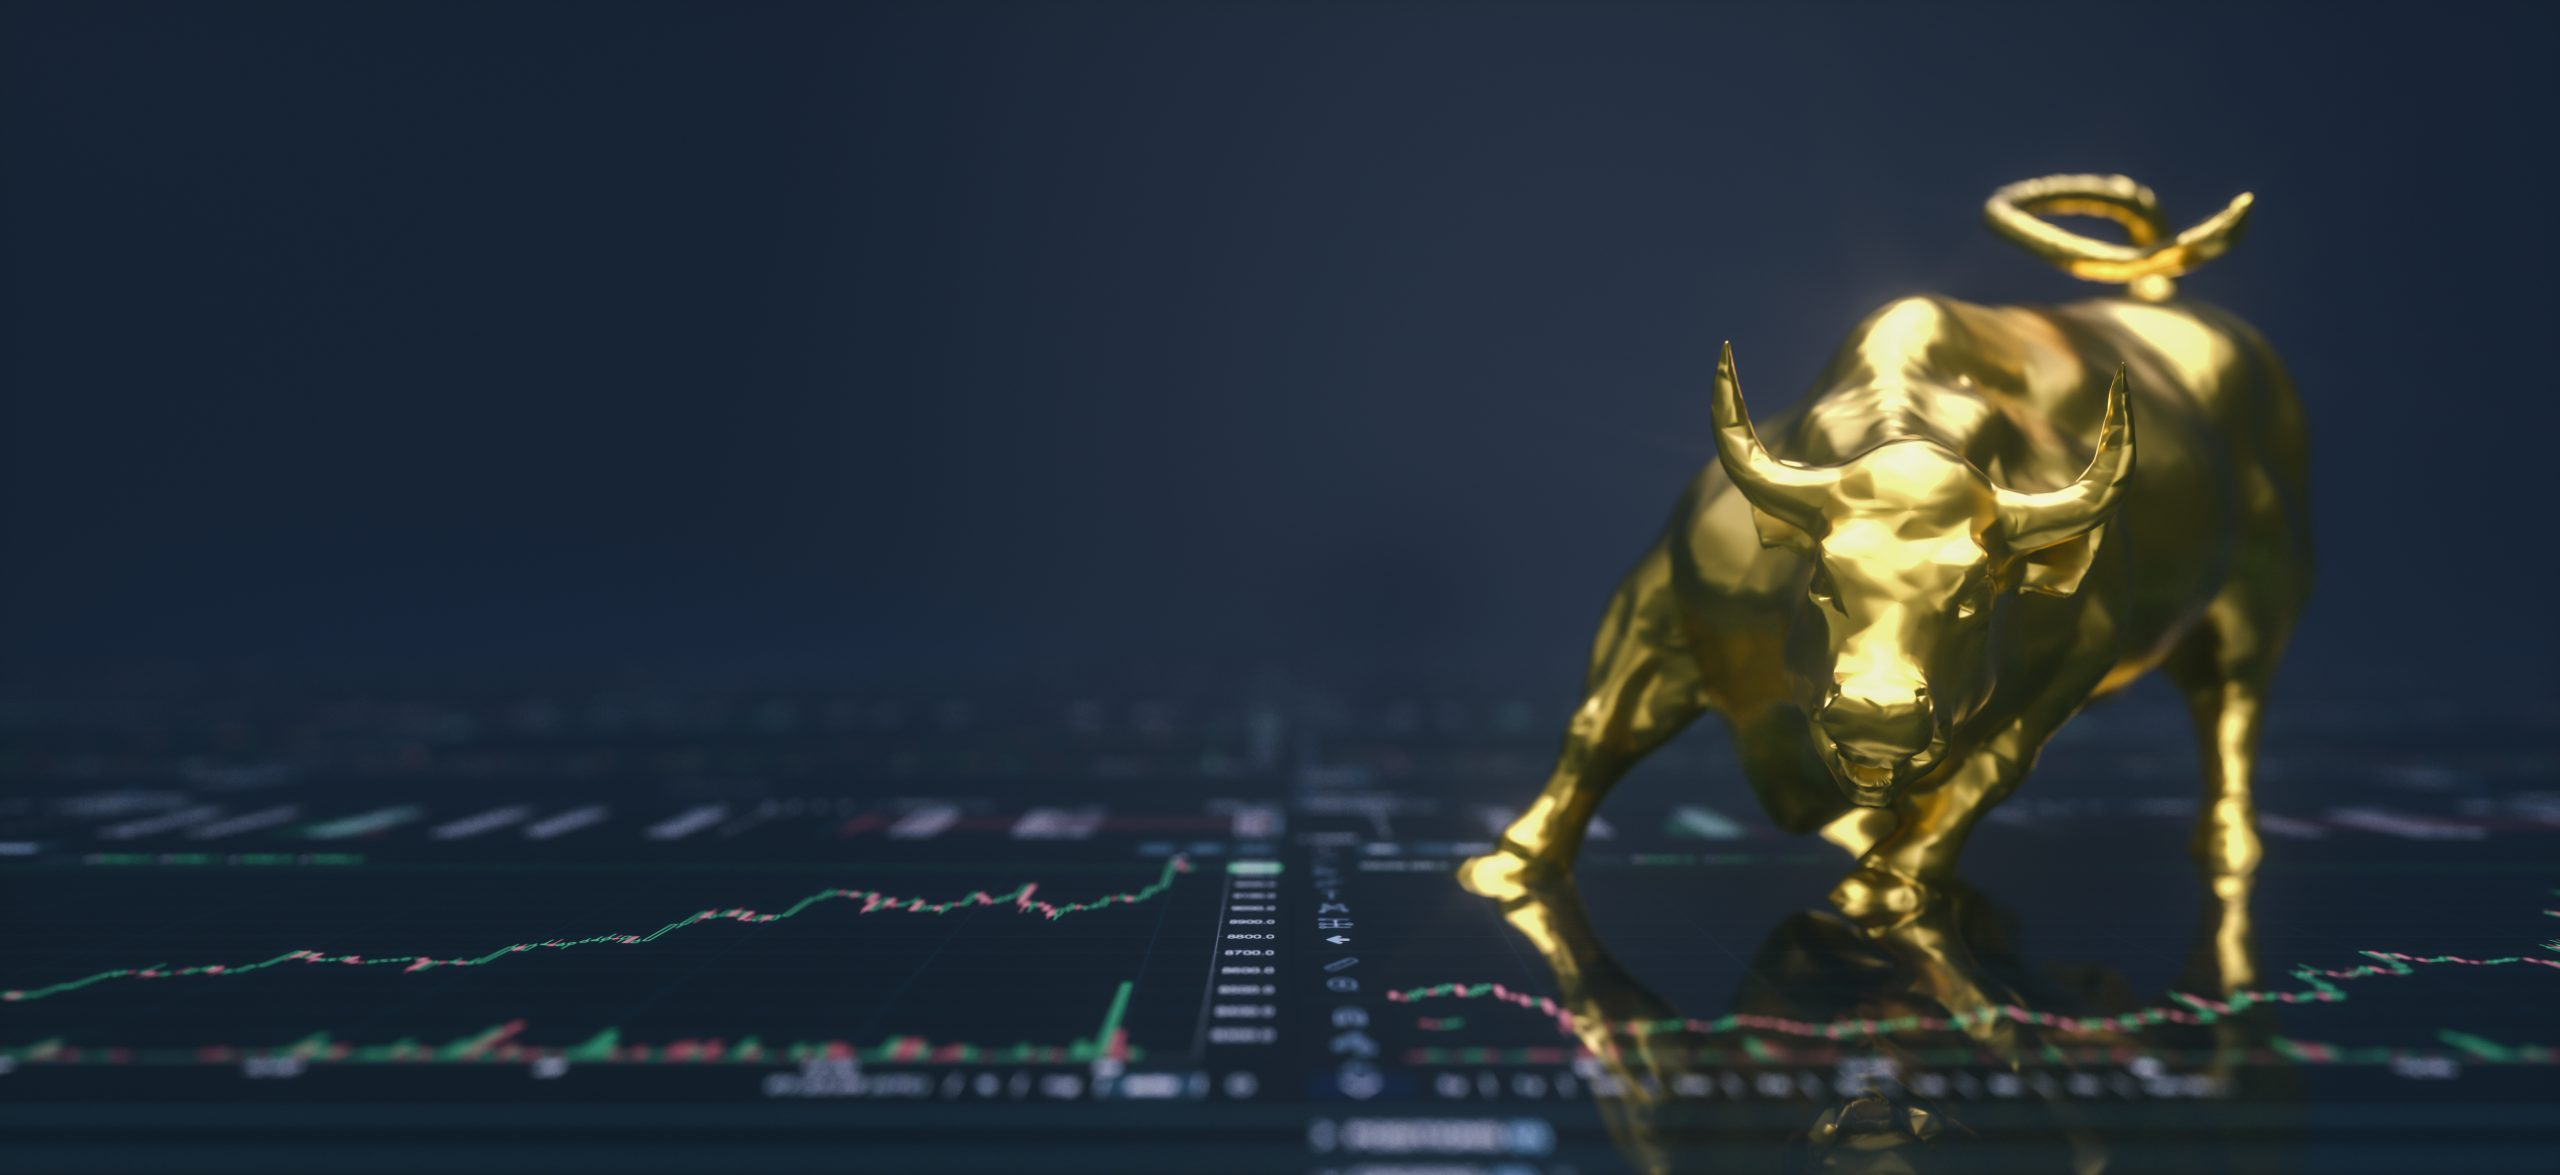 bitcoin bull market correction